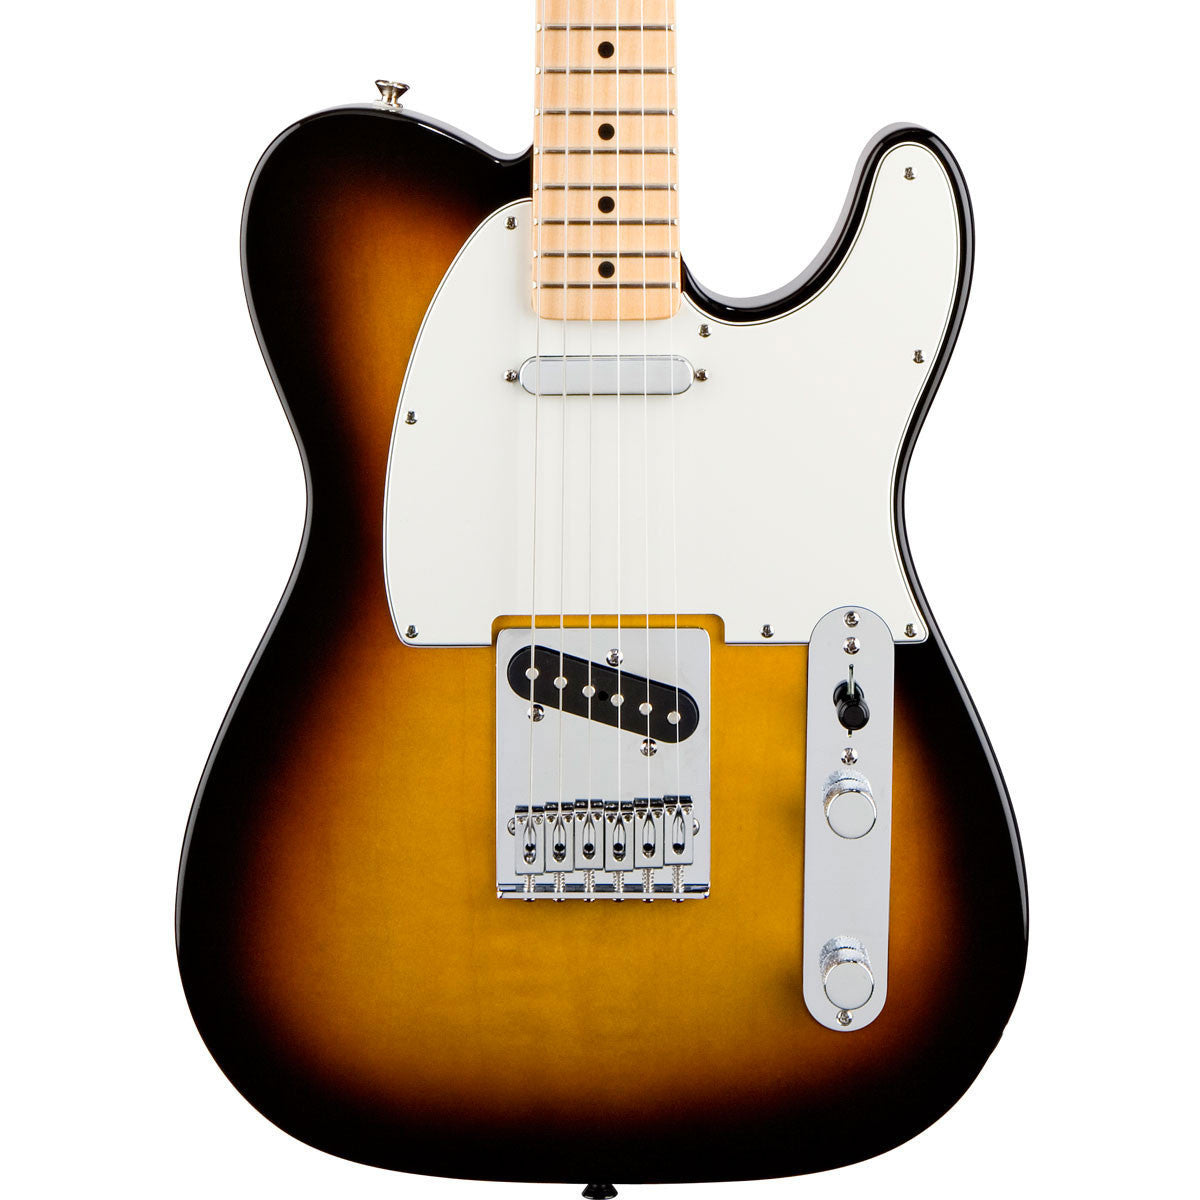 Fender Standard Telecaster - Maple - Brown Sunburst - Vintage Guitar Boutique - 1